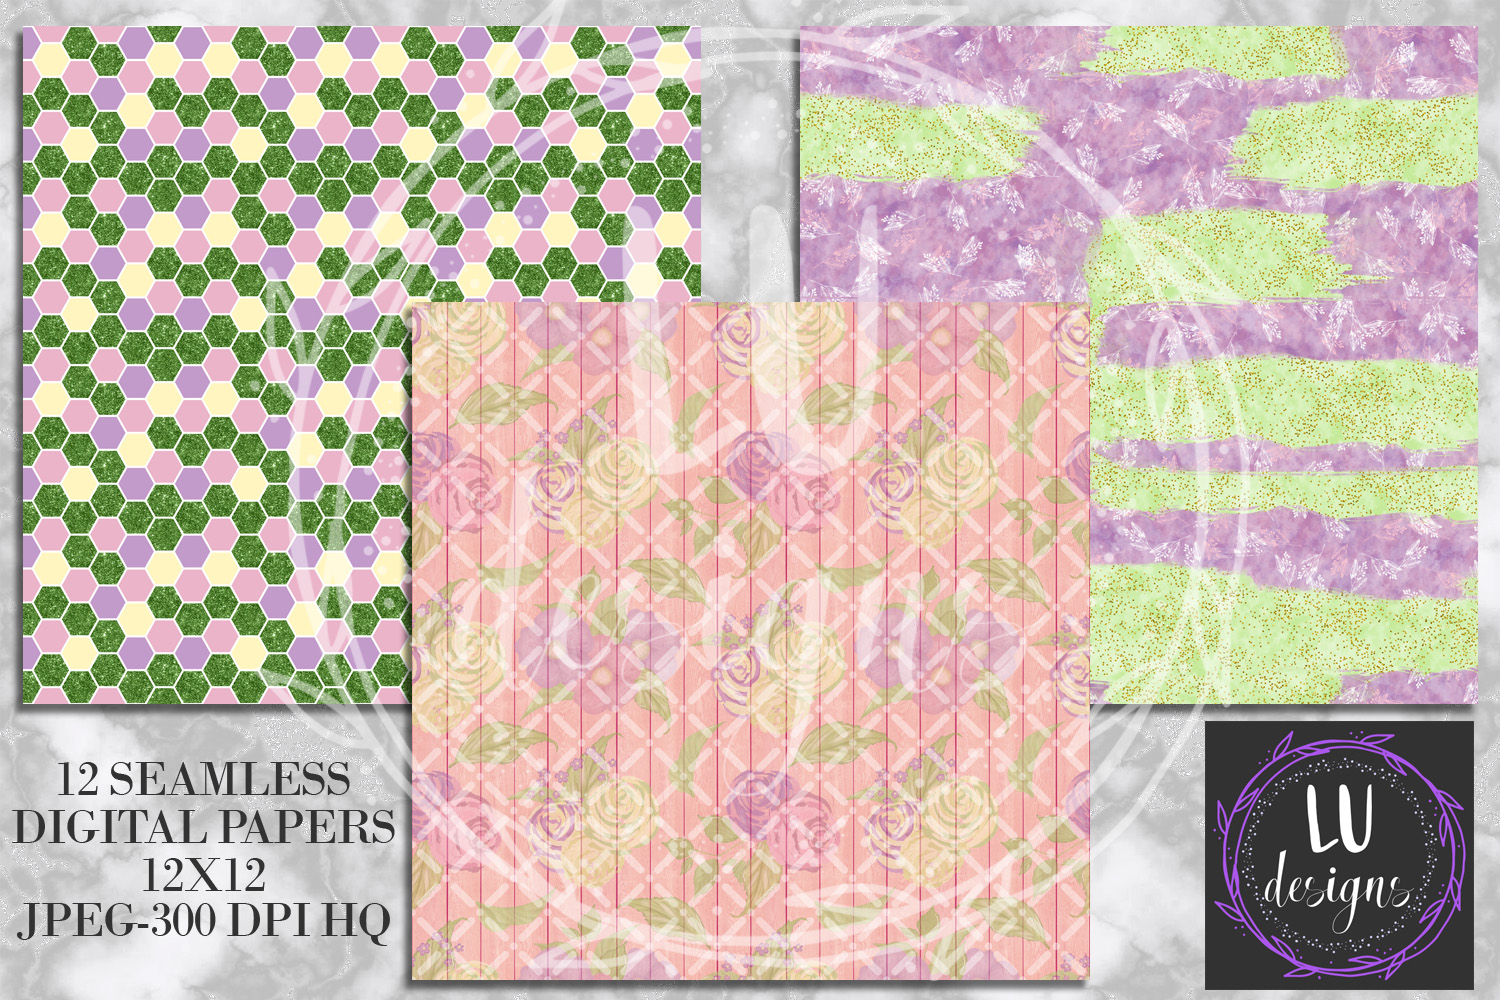 Spring Digital Papers, Spring Backgrounds, Garden Scrapbook example image 5